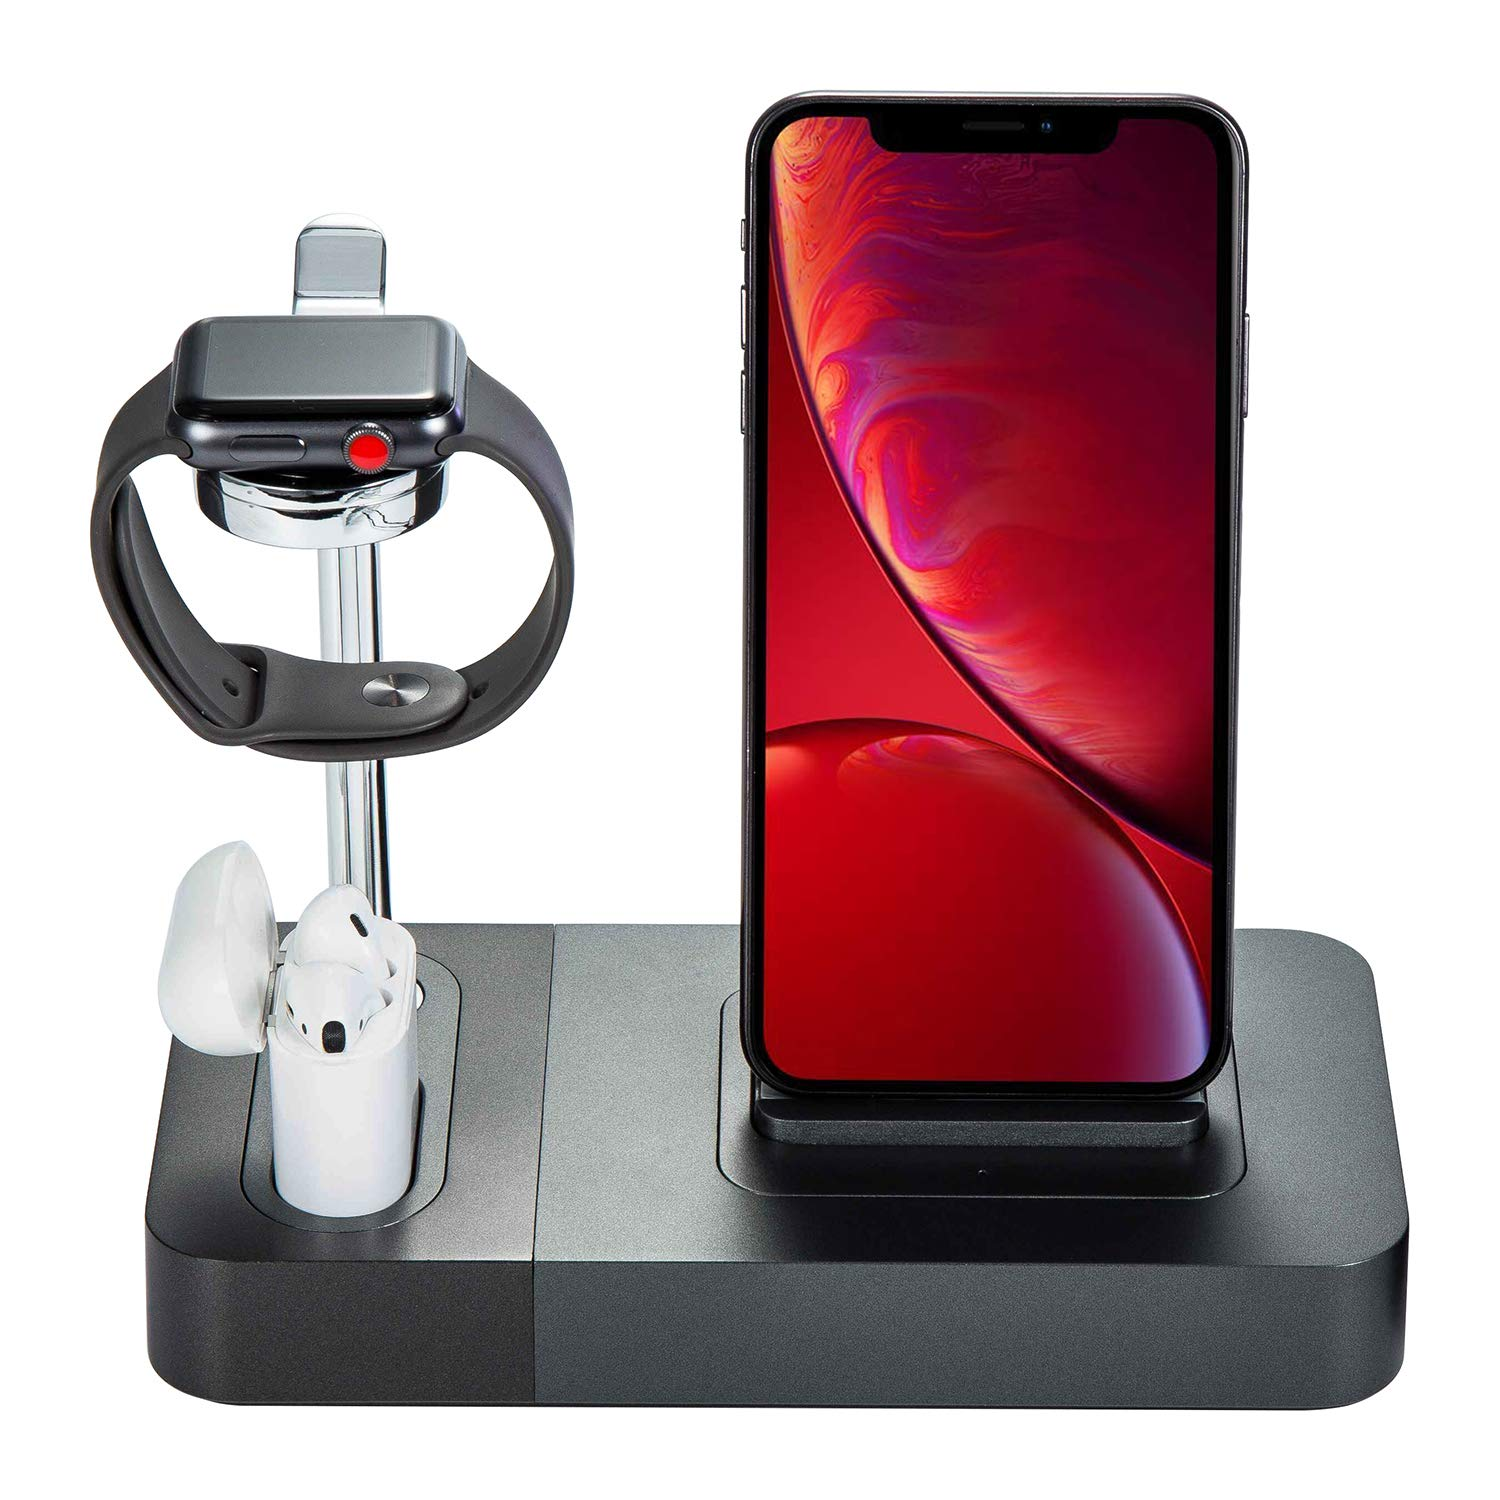 Co-Goldguard Phone Wireless Charger 3 in 1 Charger Station Charging Stand Airpods Charging Station Compatible with iPhone X XS MAX XR 8 Plus Black by Co-Goldguard